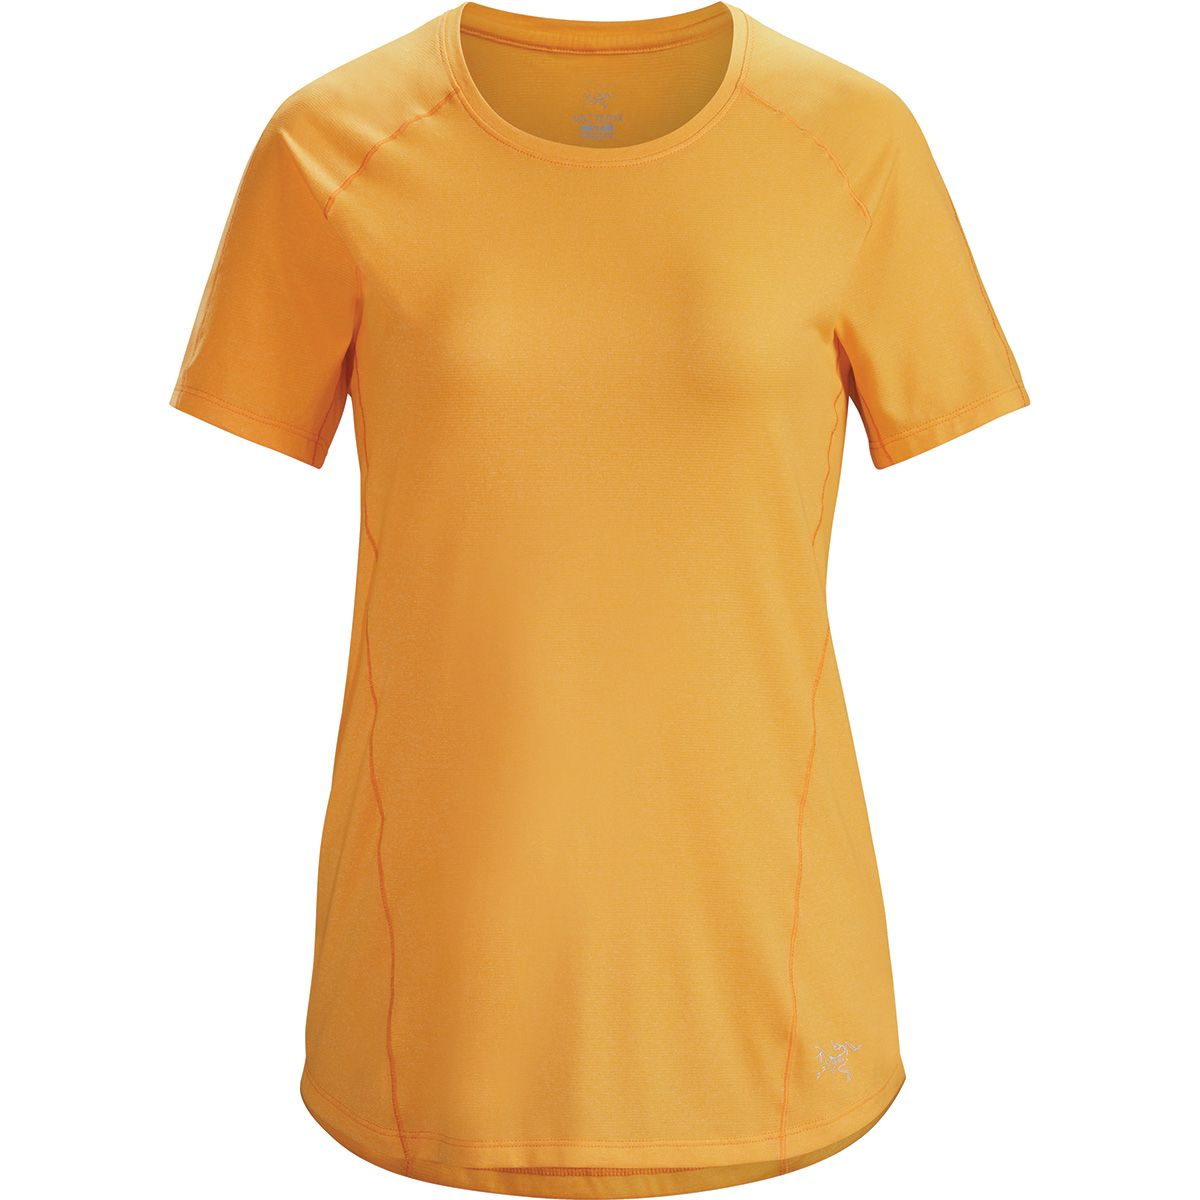 Arcteryx Damen Tolu Top T-Shirt (Größe M, Orange) | T-Shirts Funktion > Damen